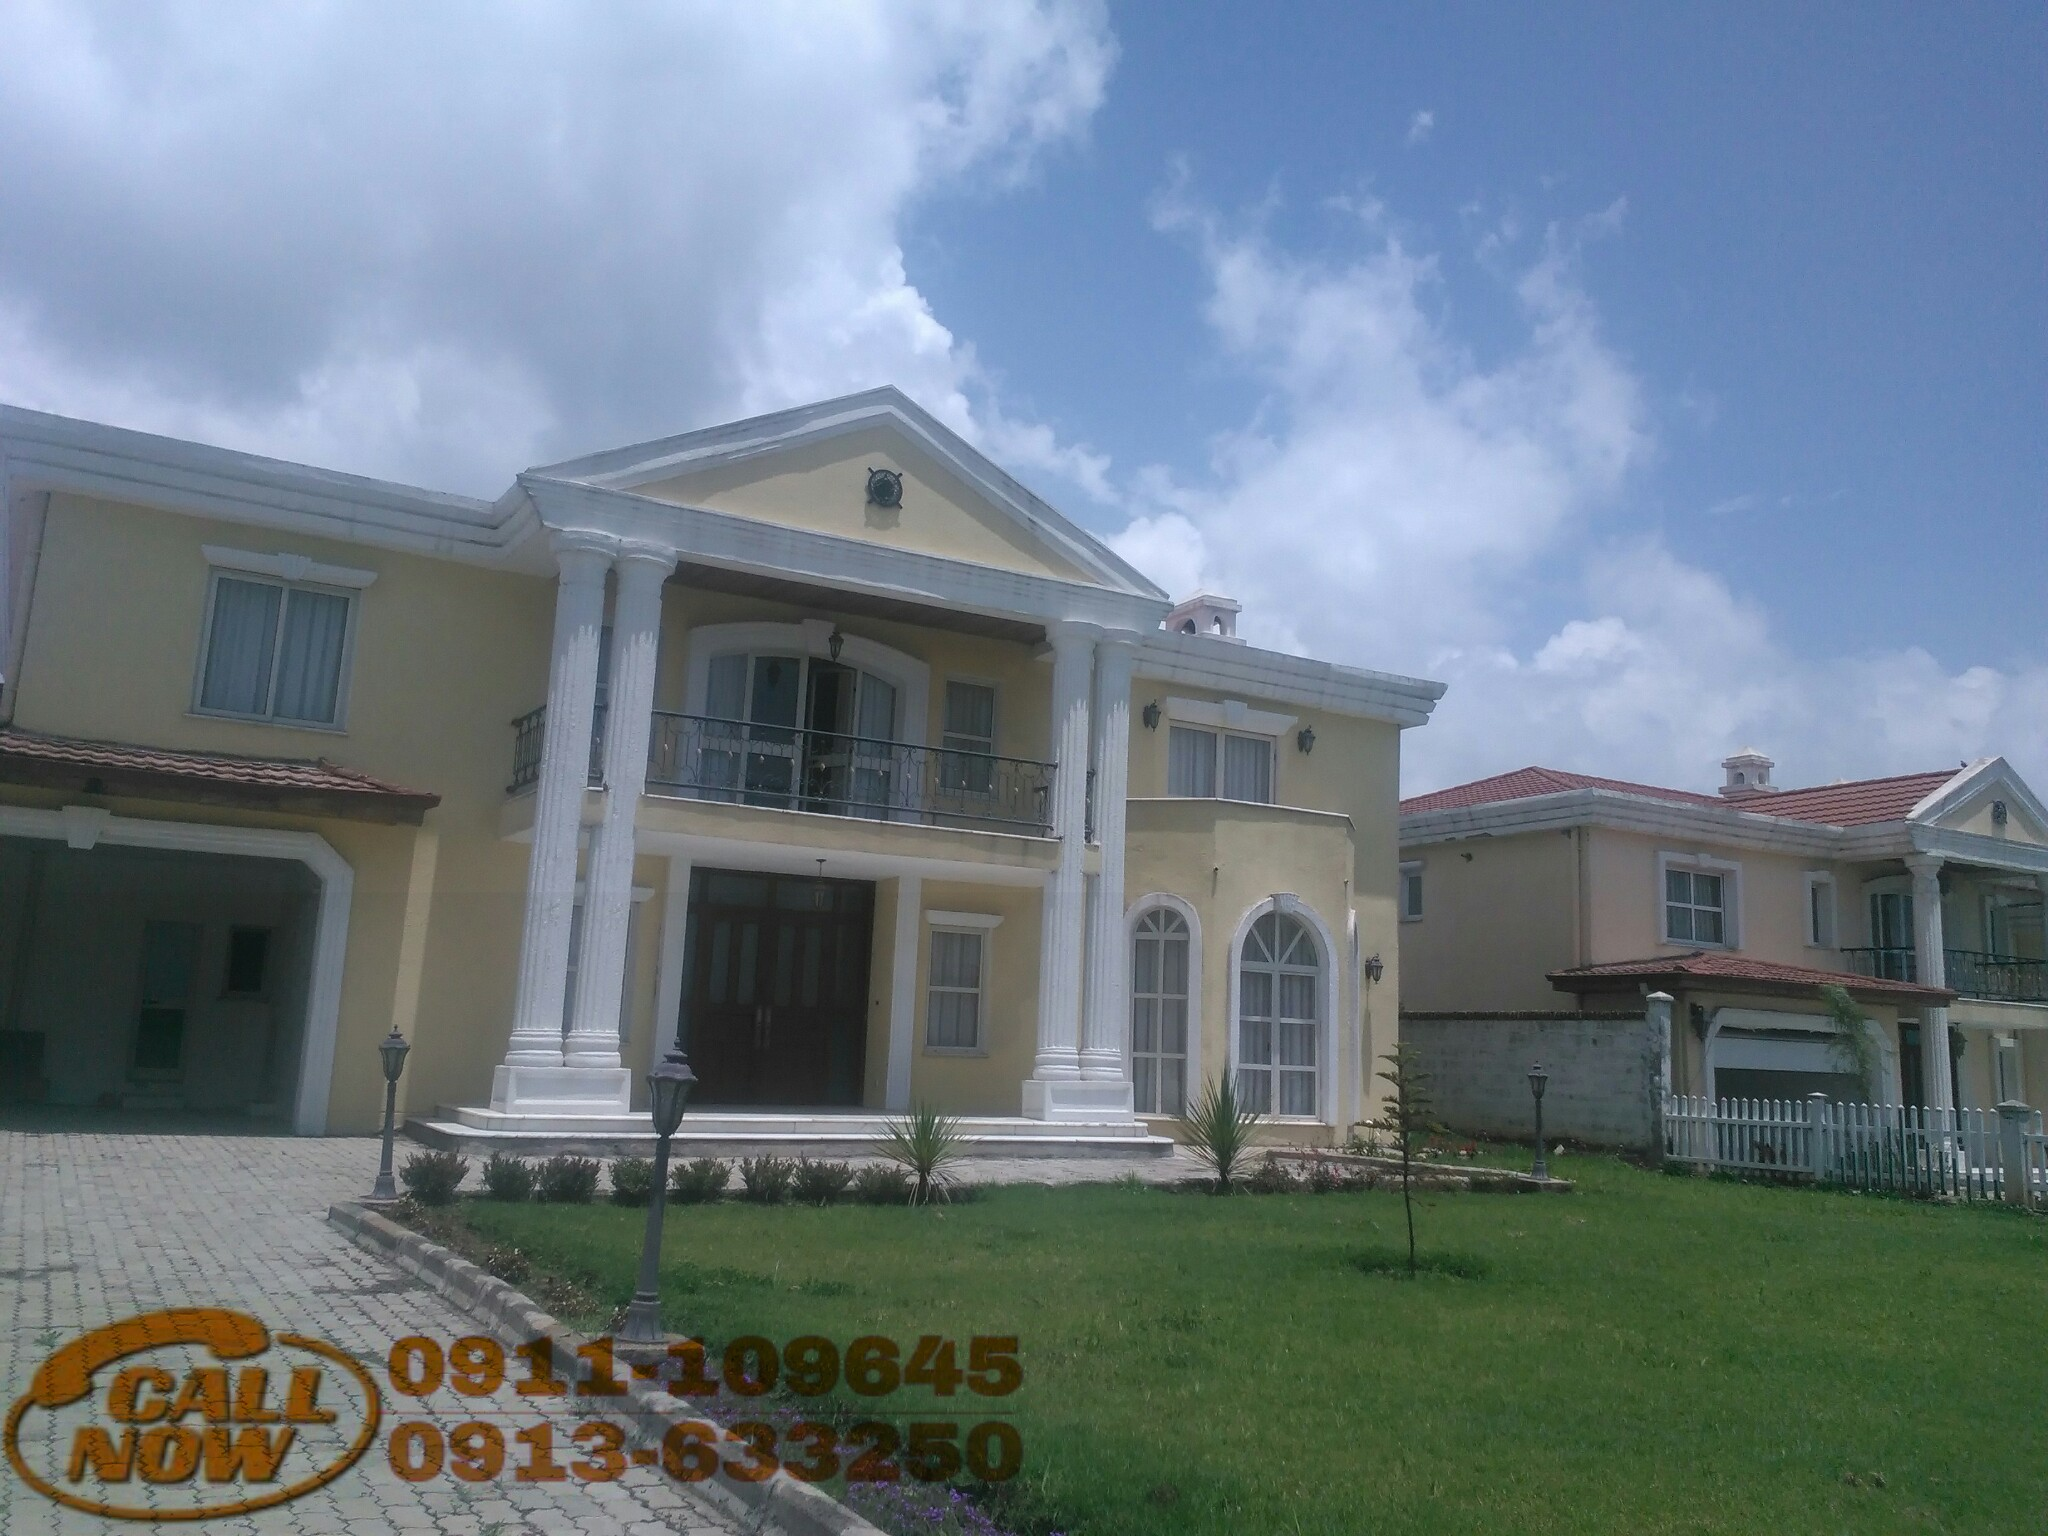 Ccd Type F Home For Sale Legetafo